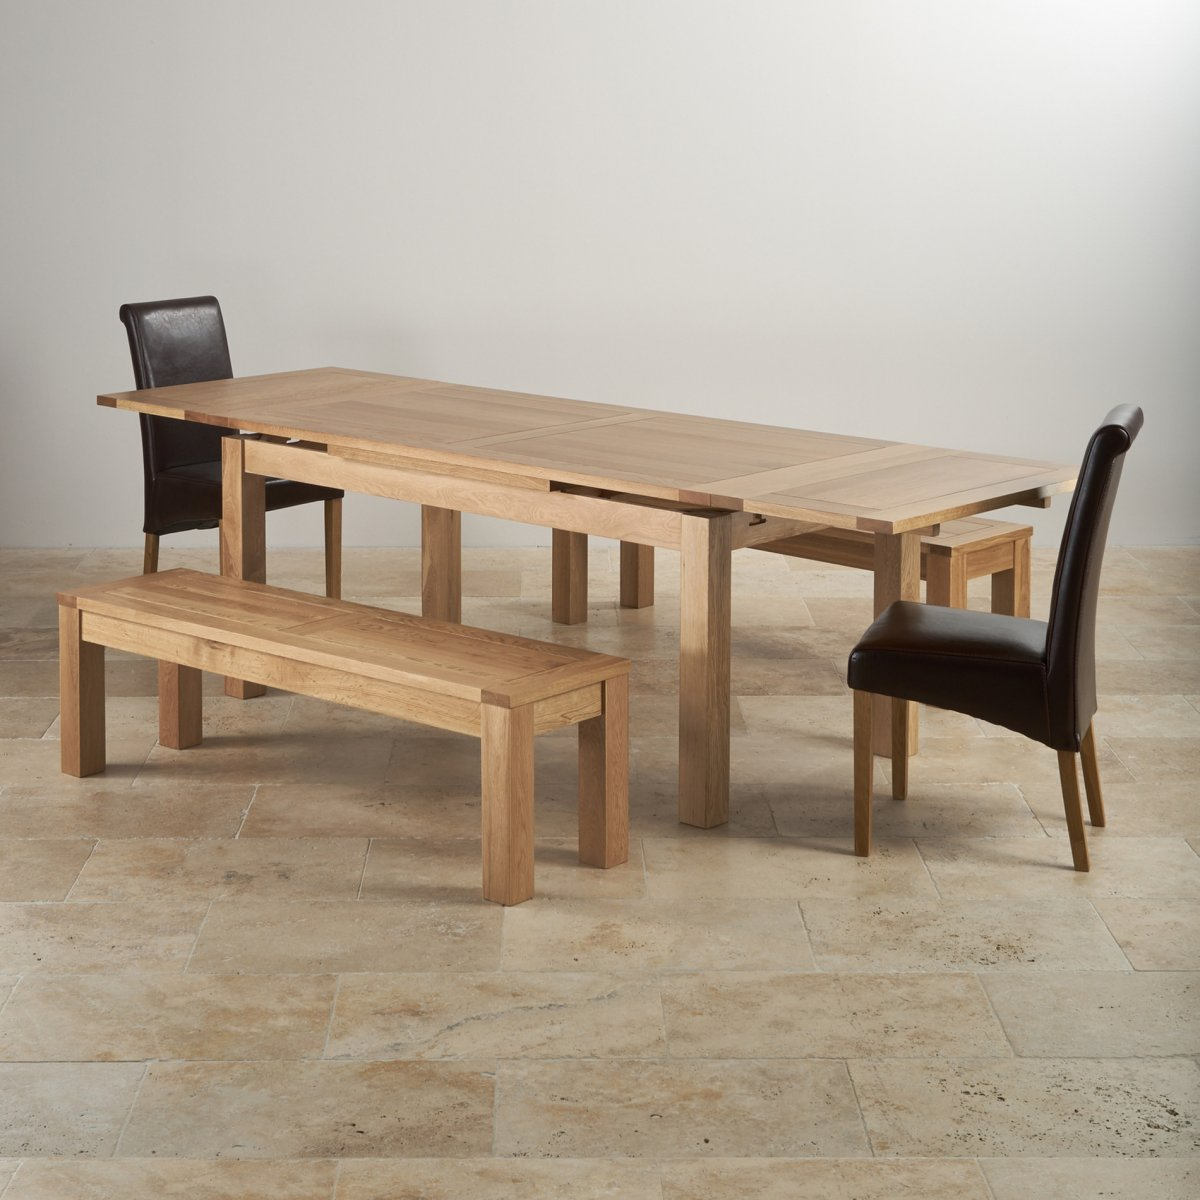 2 Chair Dining Table Dorset Dining Set In Oak Dining Table 43 2 Benches And 2 Chairs